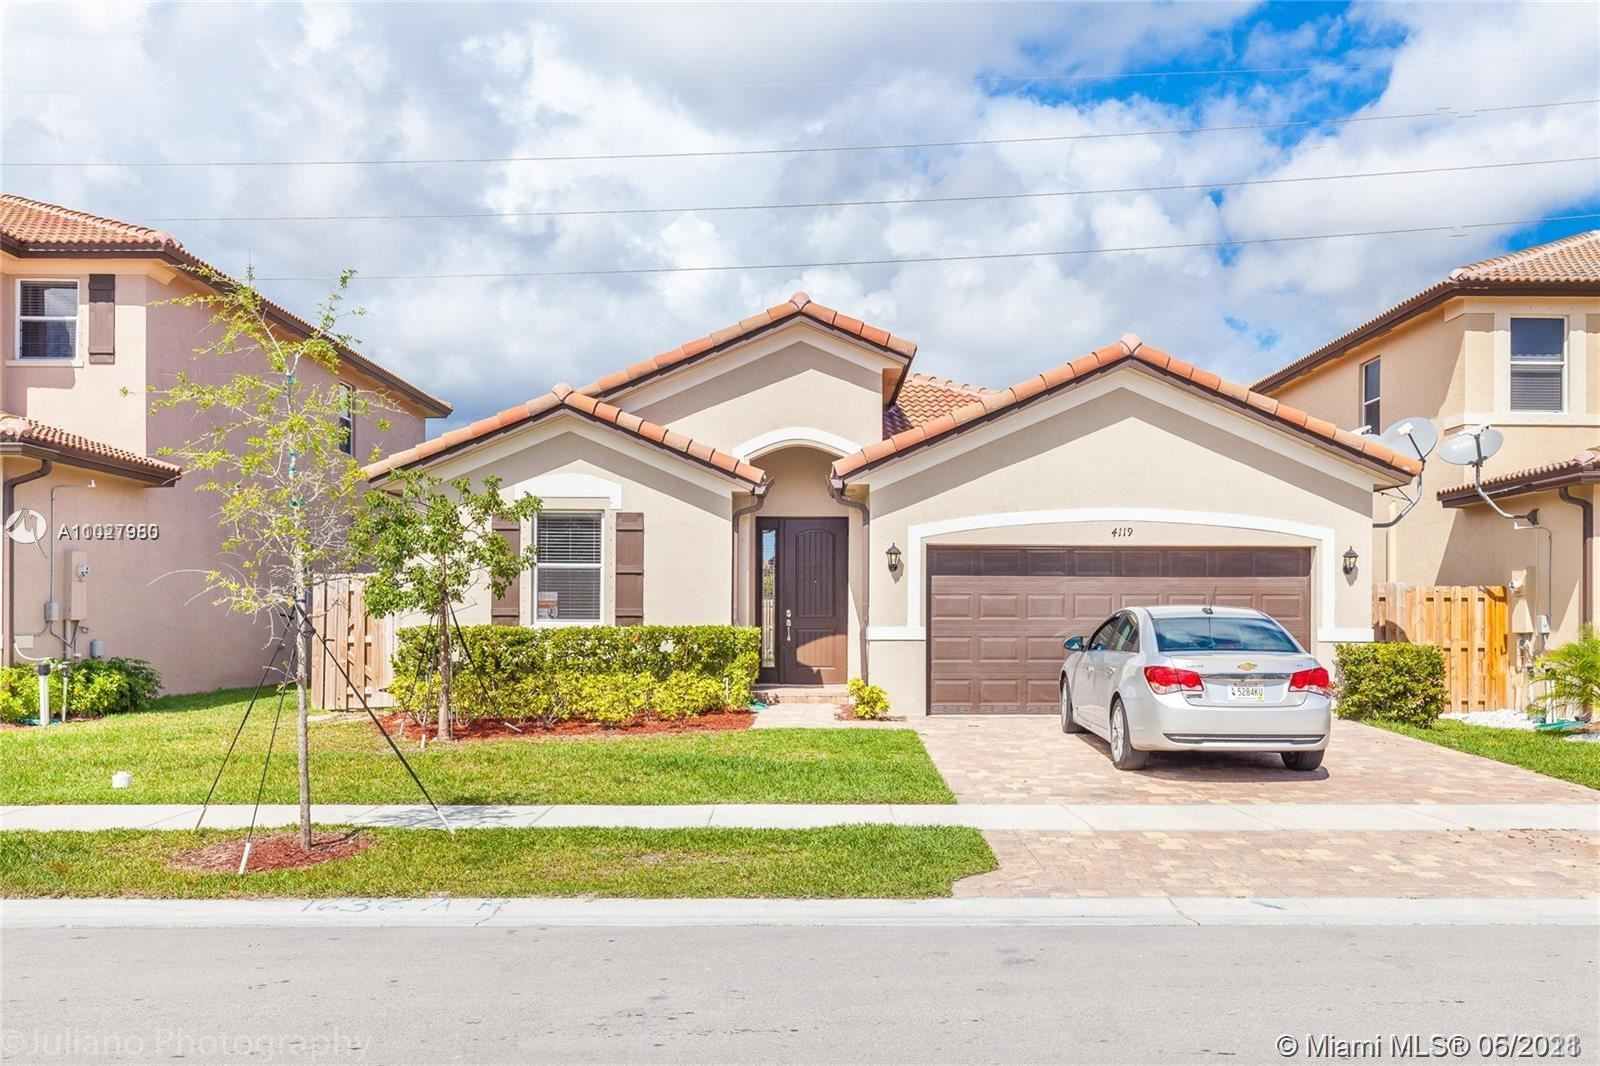 4119 NE 21st Ct, Homestead, FL 33033 - #: A11027980